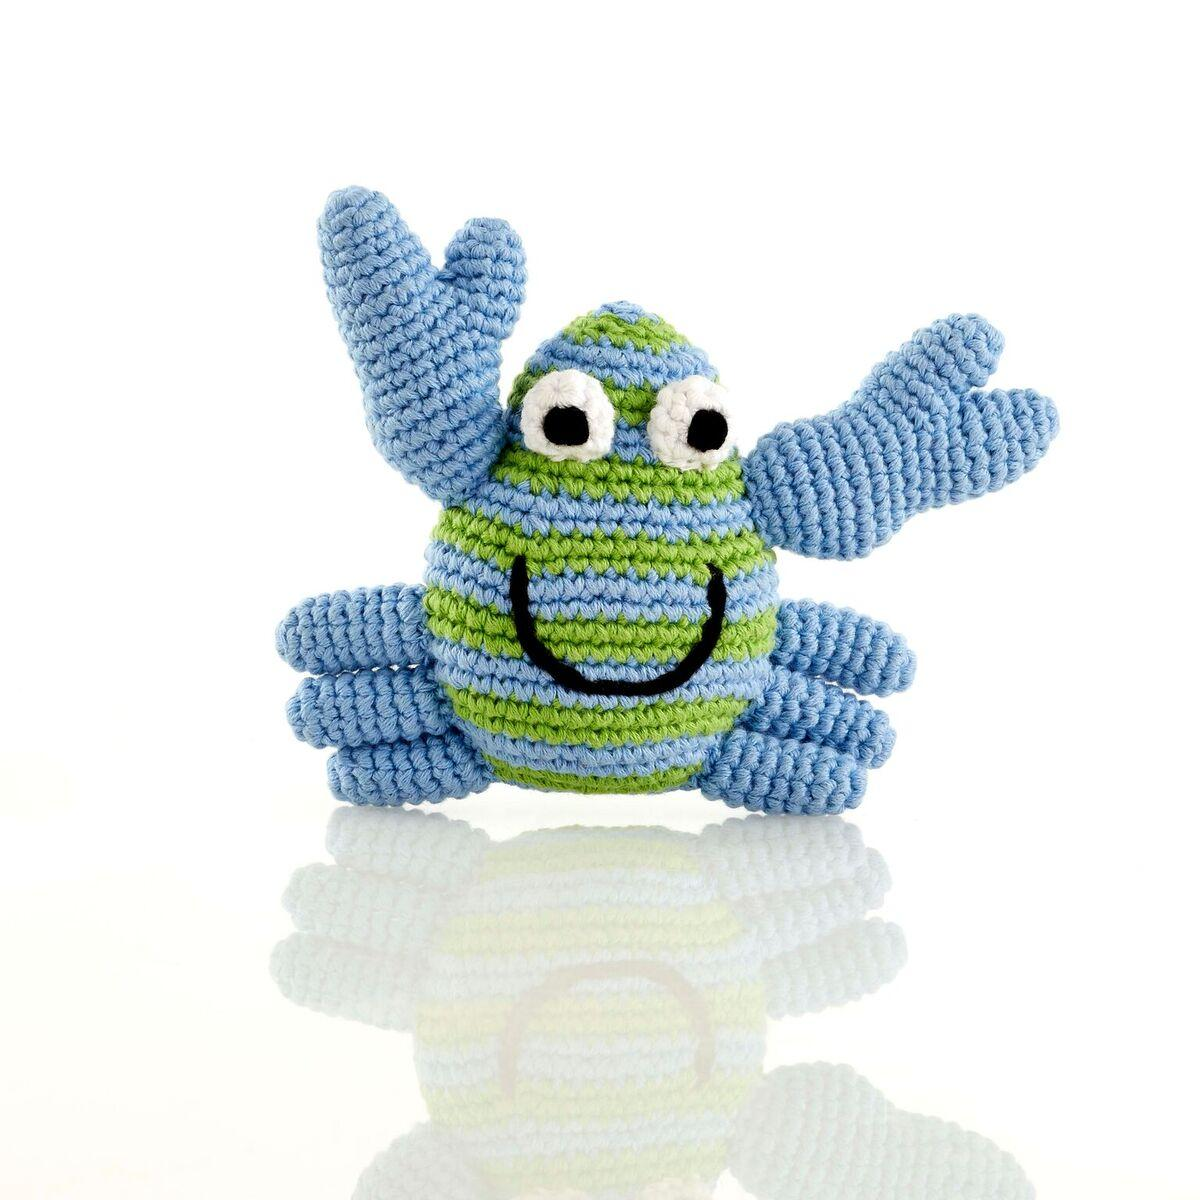 Baby Rattle Toys : Baby toys fair trade cotton crochet blue crab rattle